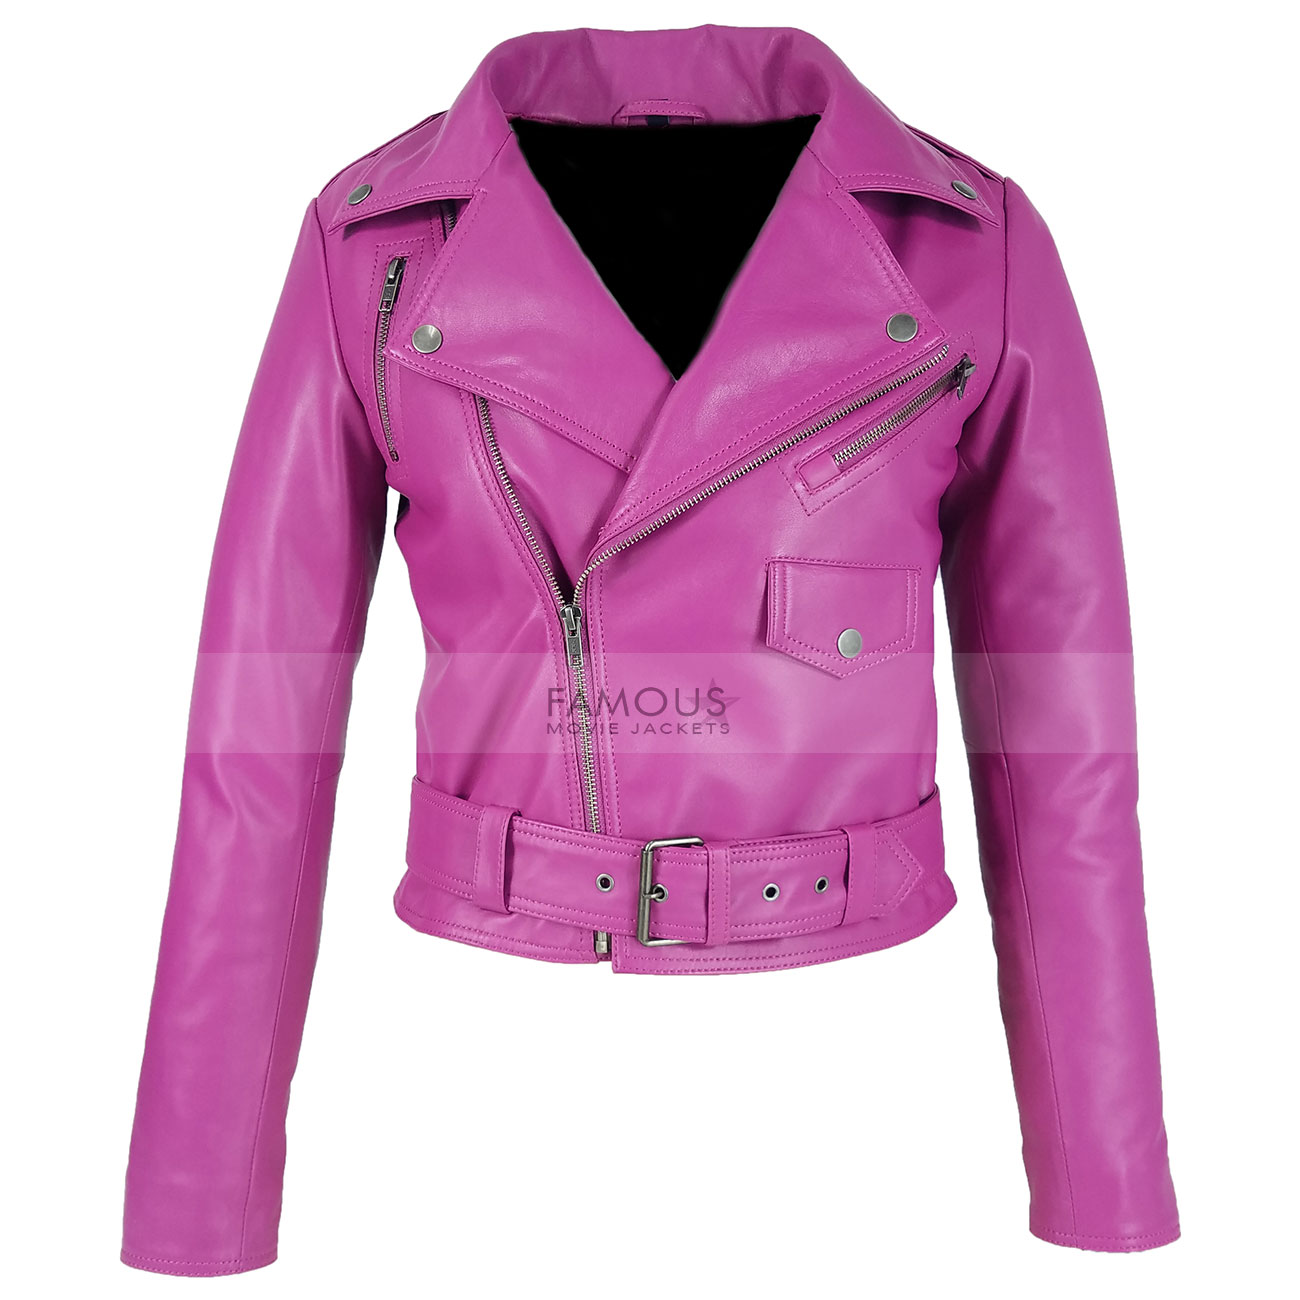 Jessica-Alba-Hot-Pink-Leather-Jacket1